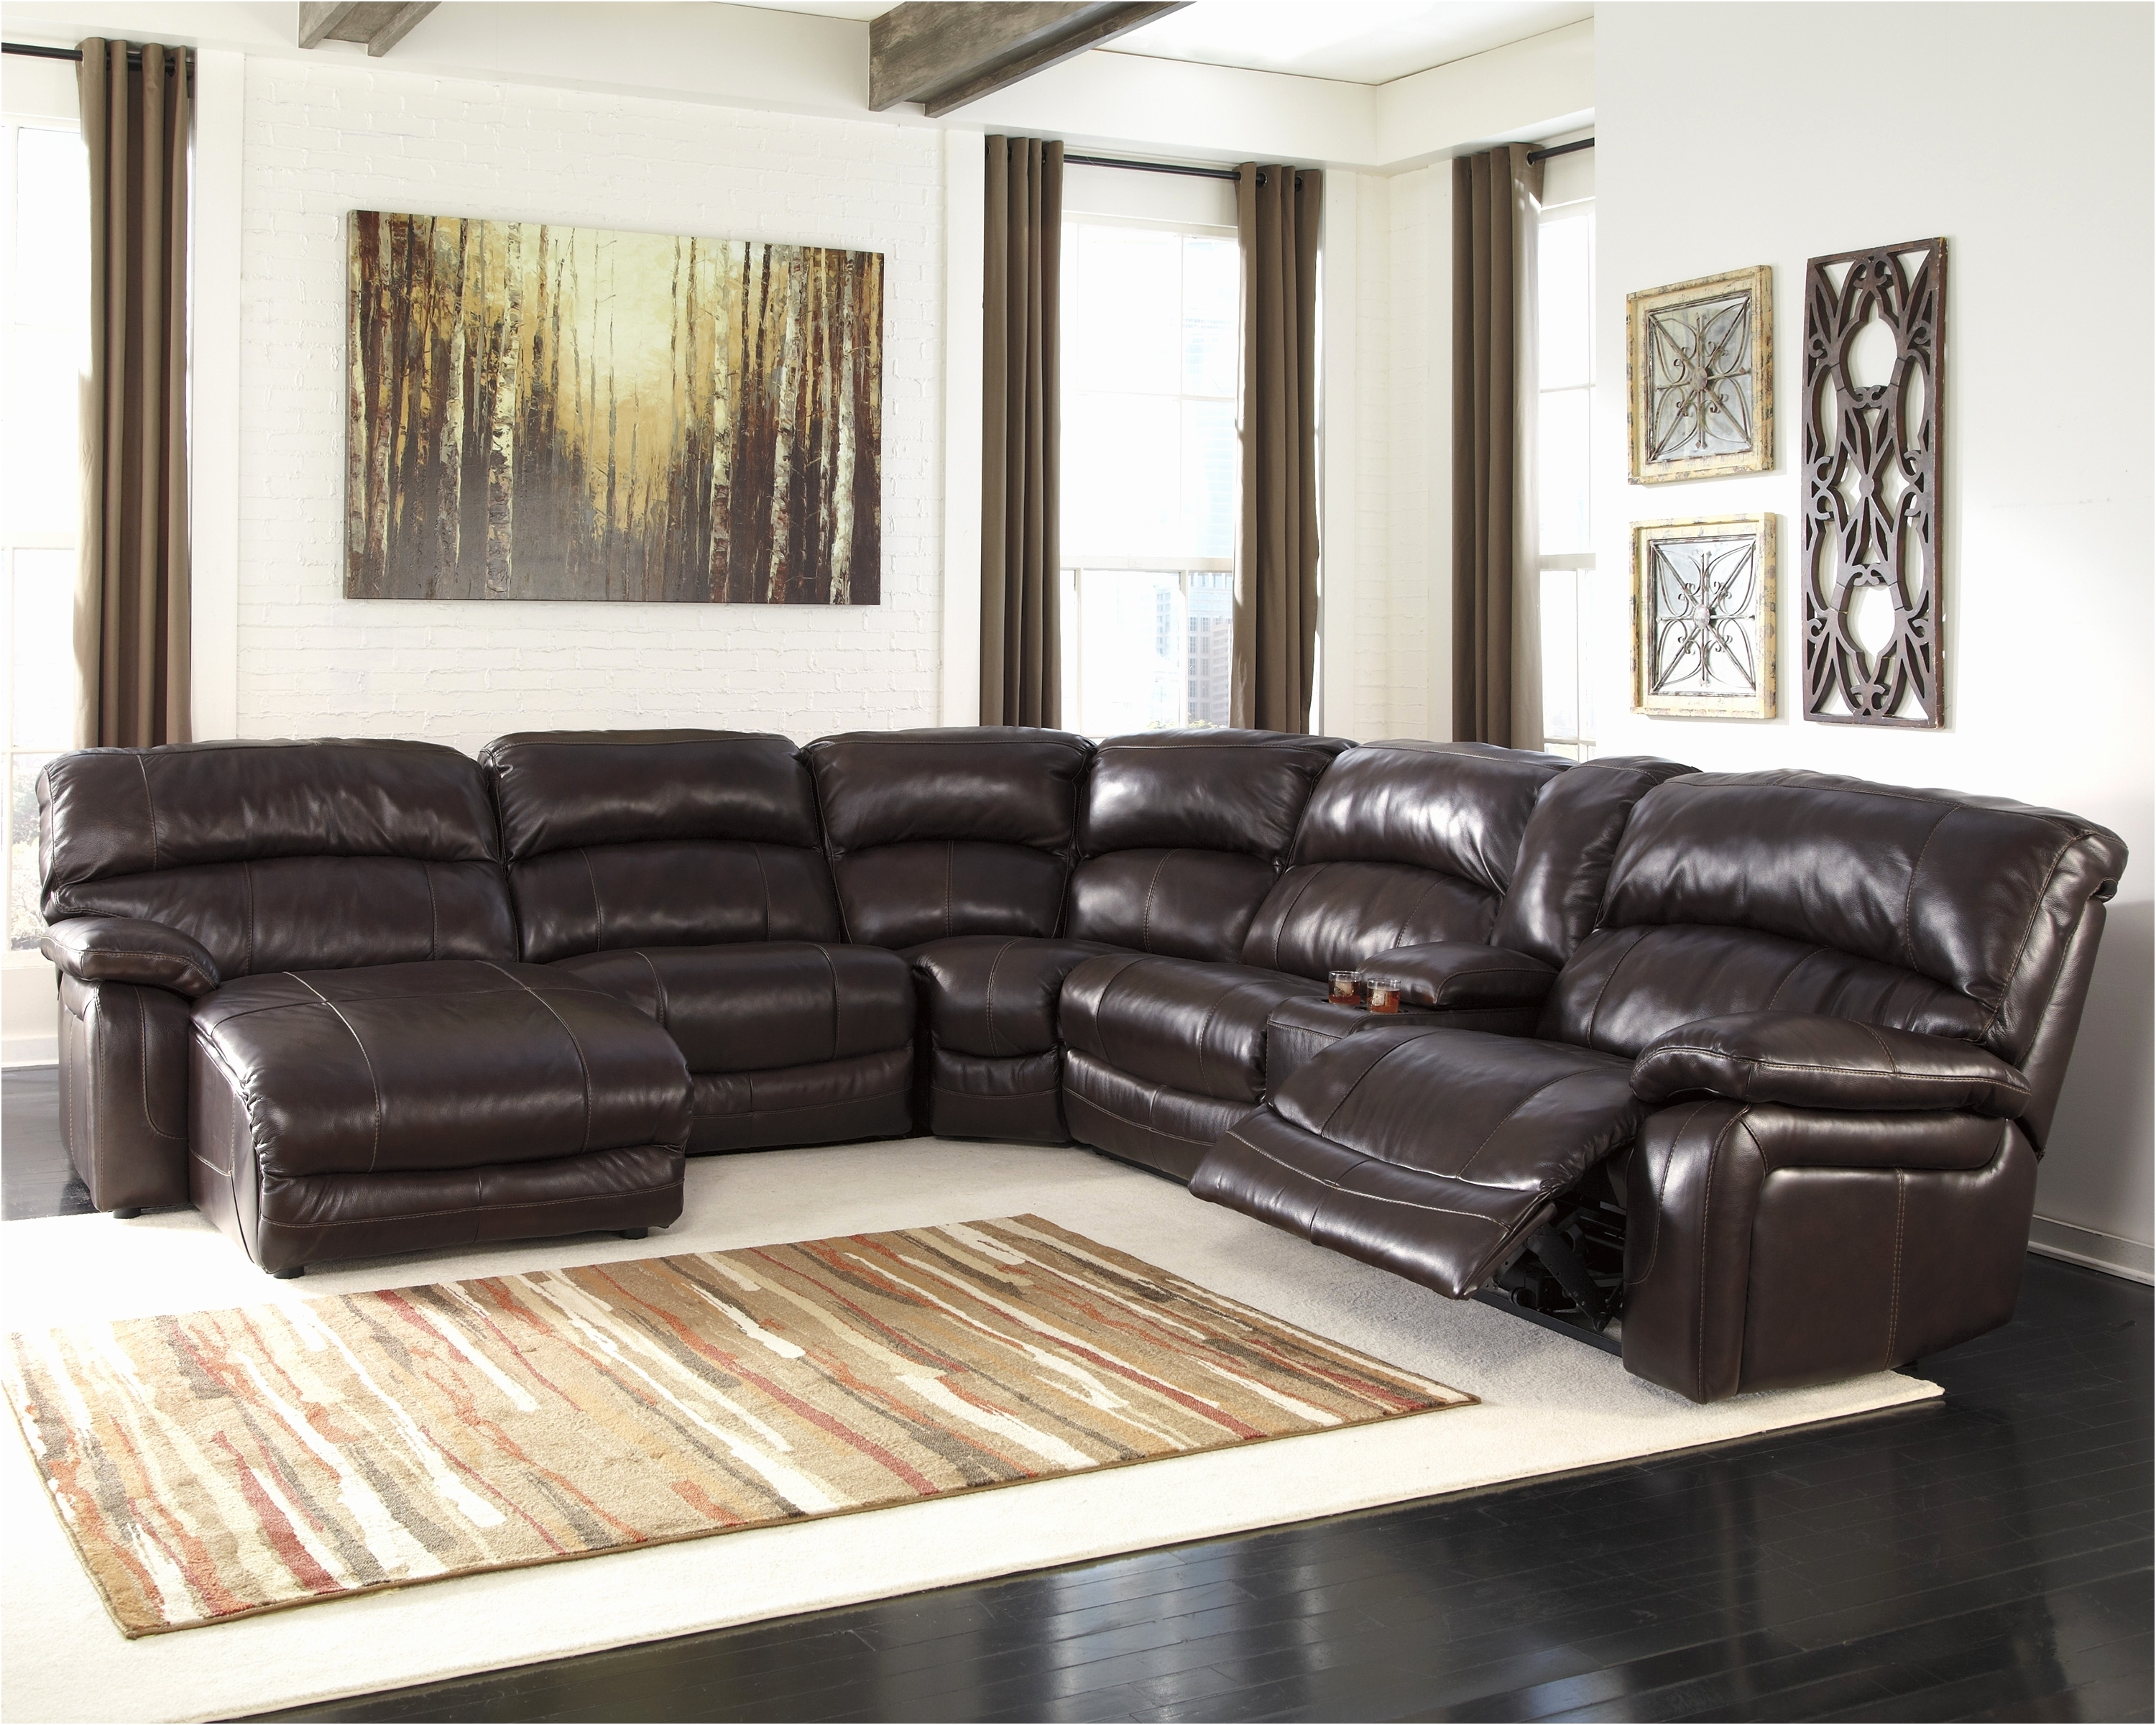 Etonnant Well Known Kmart Sectional Sofas Inside Fresh Sears Leather Sofa New U2013  Intuisiblog (View 16